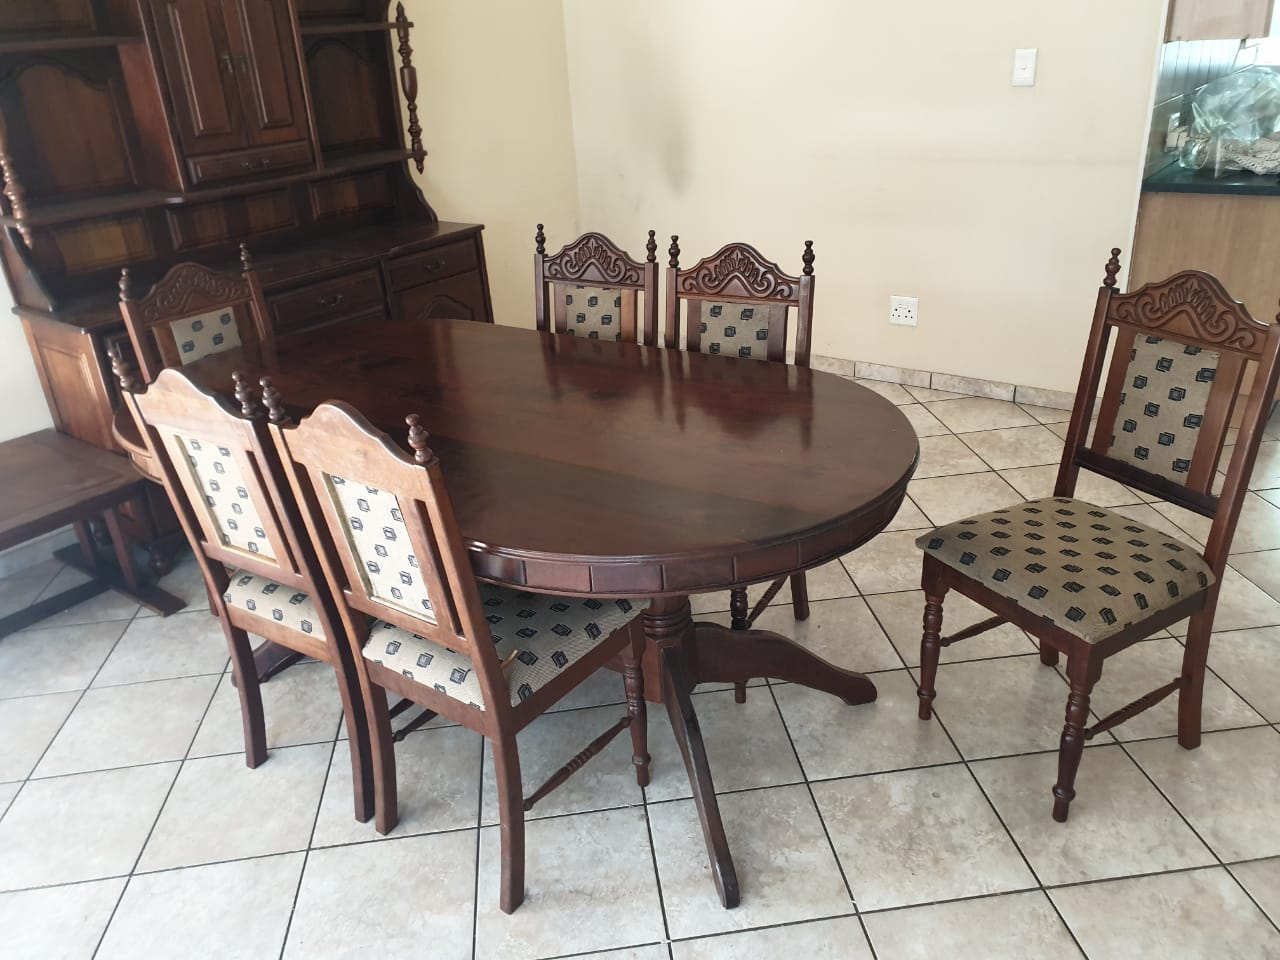 8 Seater solid Imbuia wood dinning table and buffet.